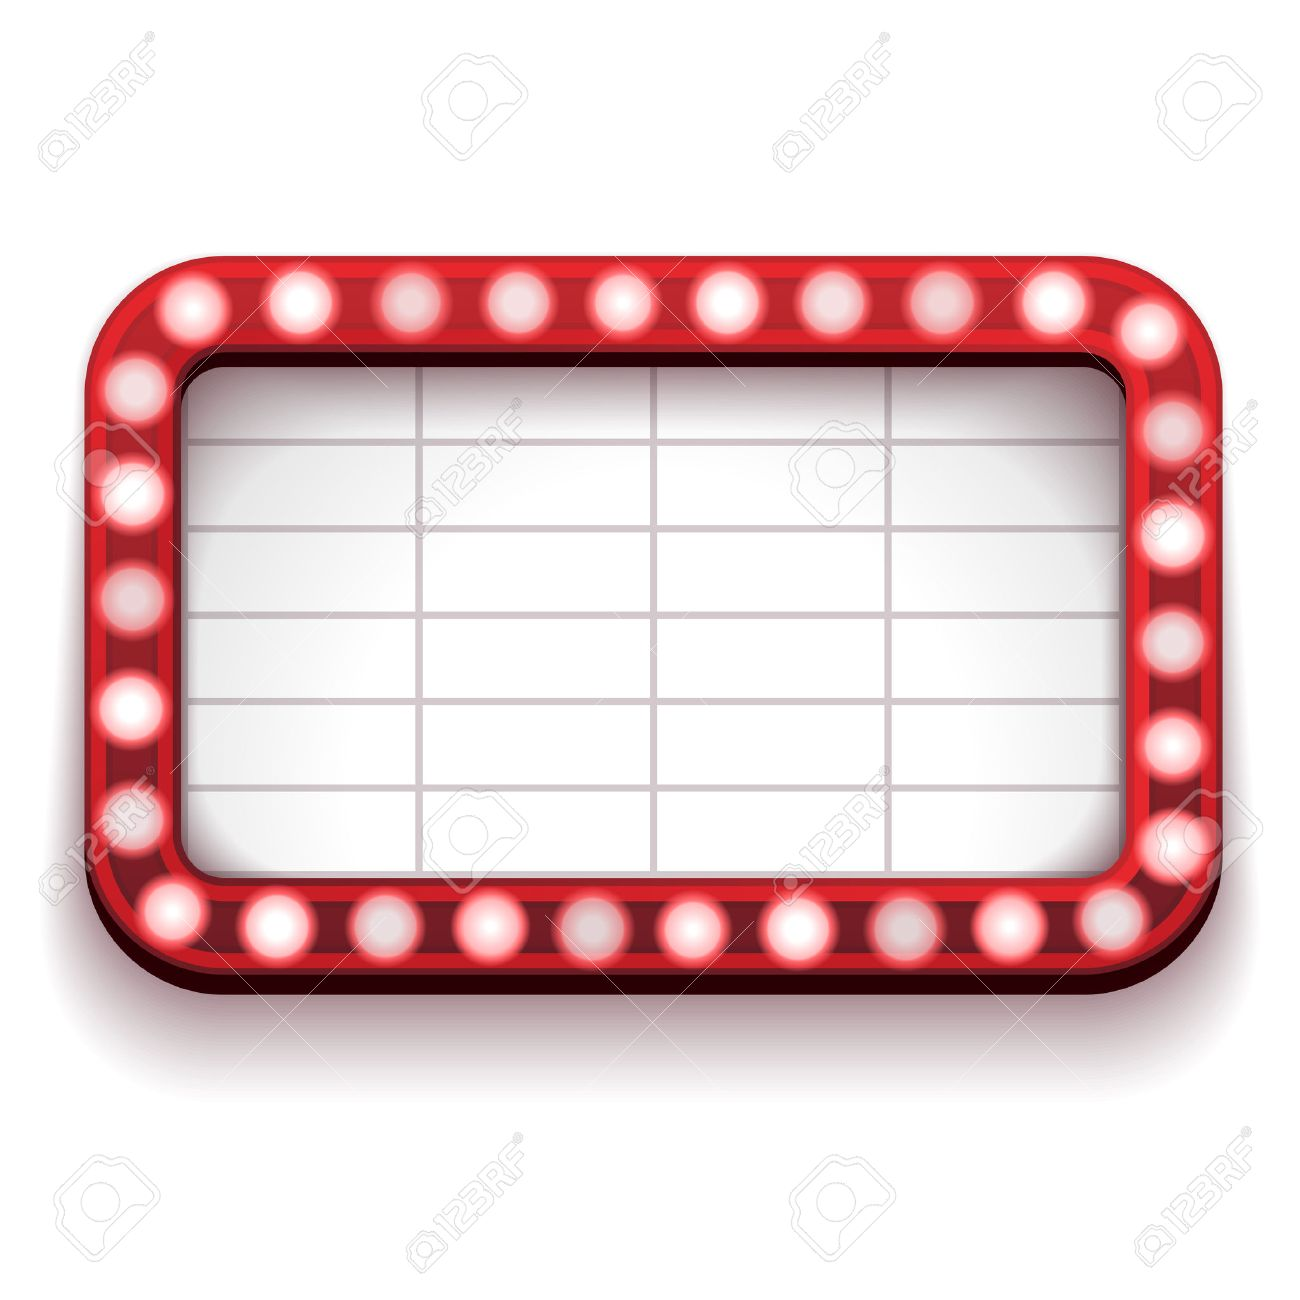 a red theater sign with lights on the border royalty free cliparts rh 123rf com